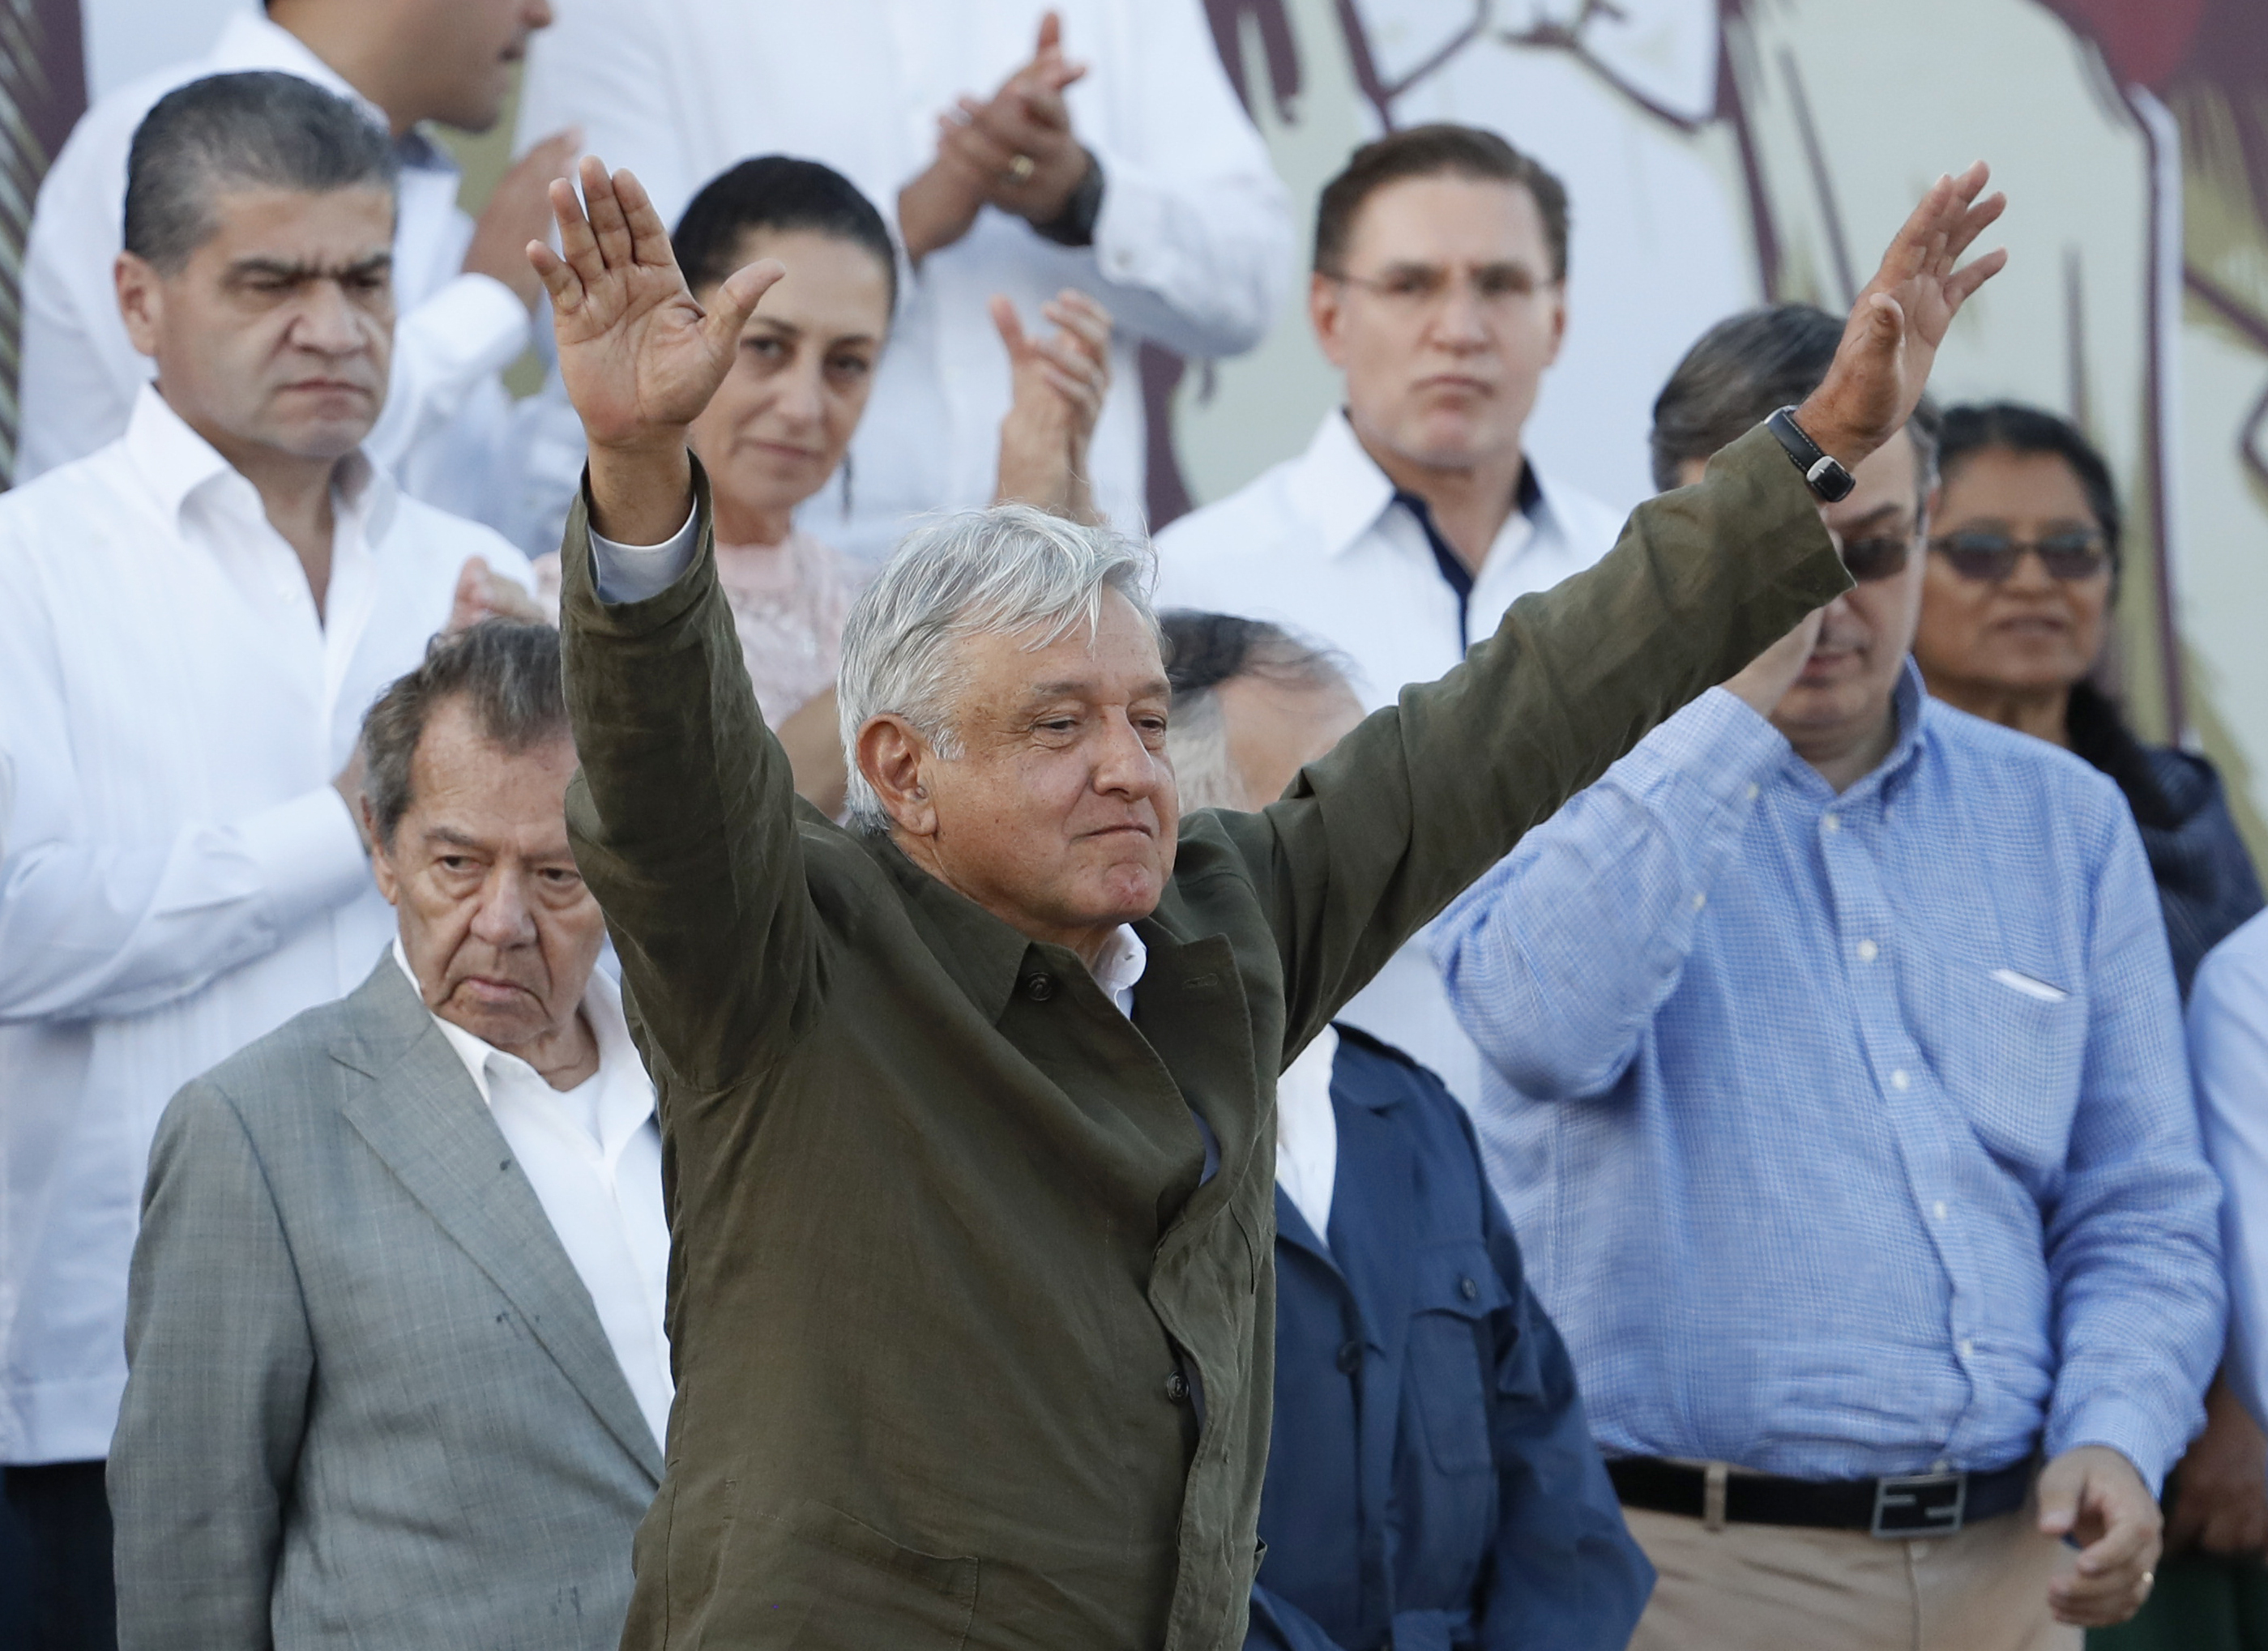 'Dignity intact': Mexico celebrates deal in Tijuana rally